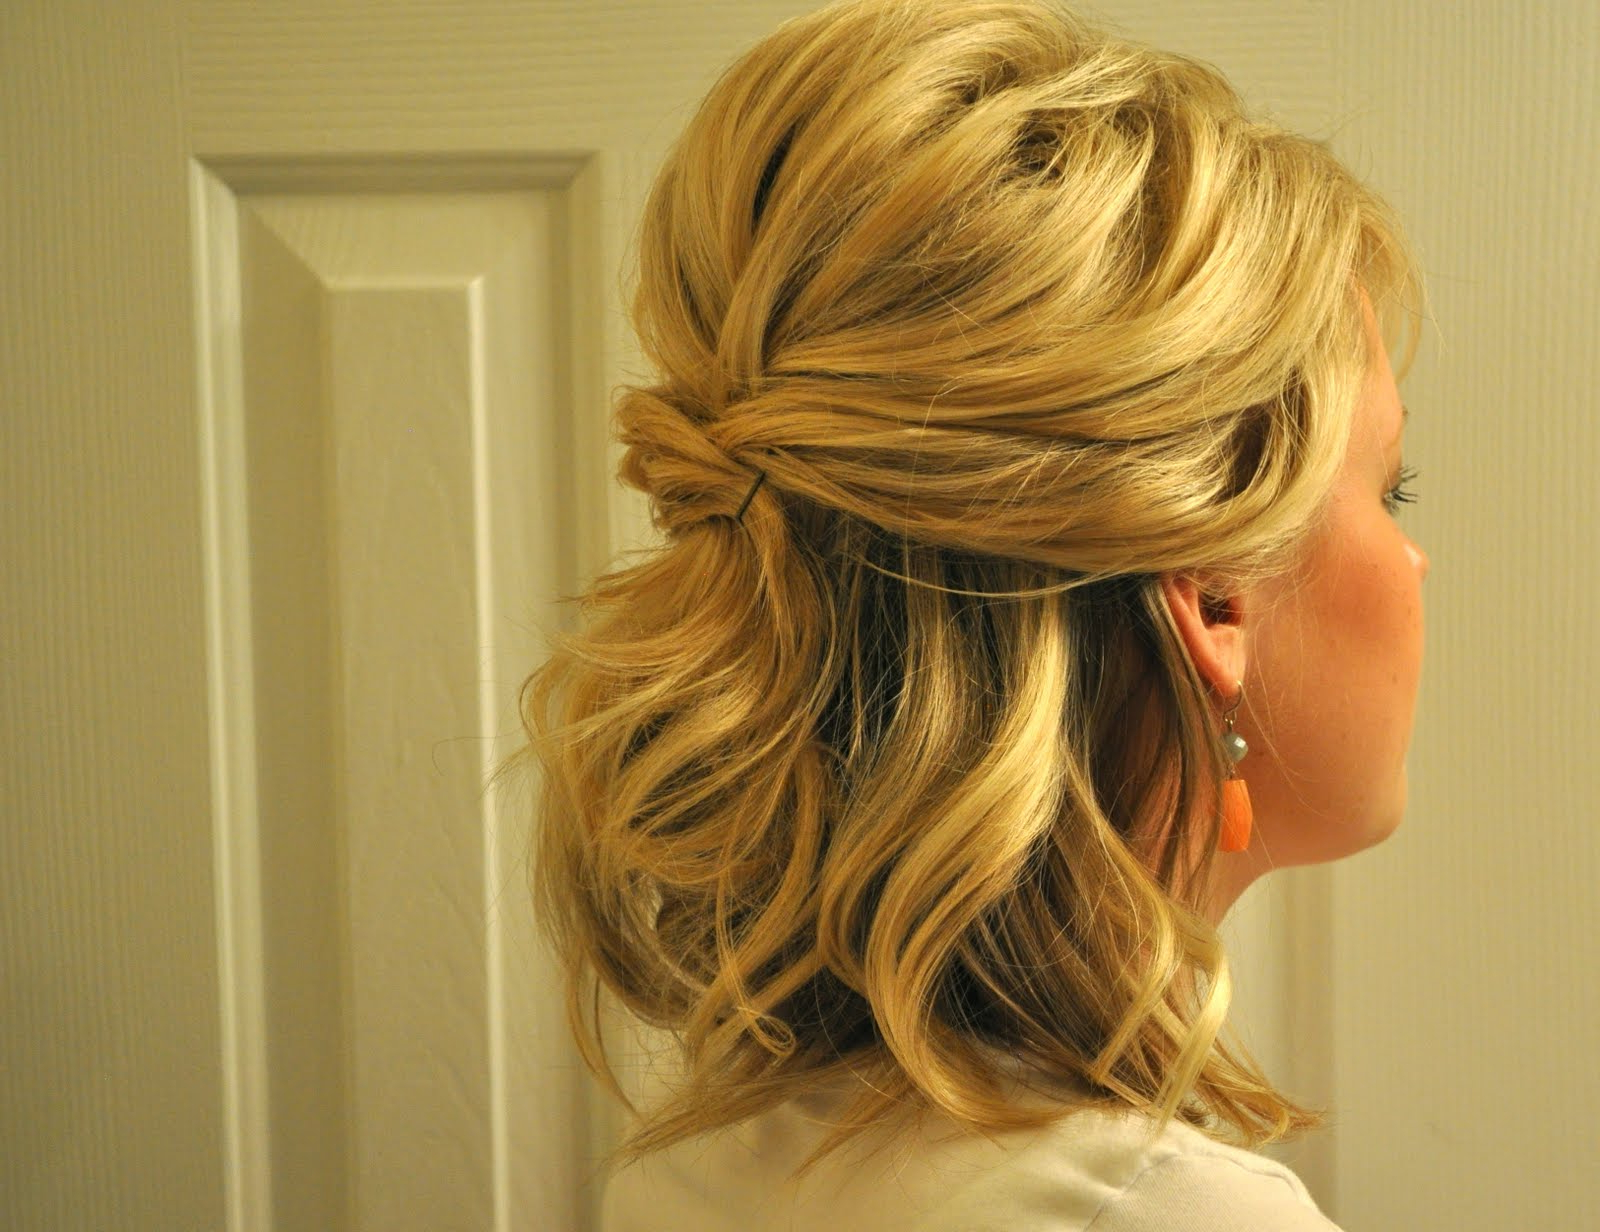 Half Up Hairstyles For Medium Length Hair (View 6 of 20)